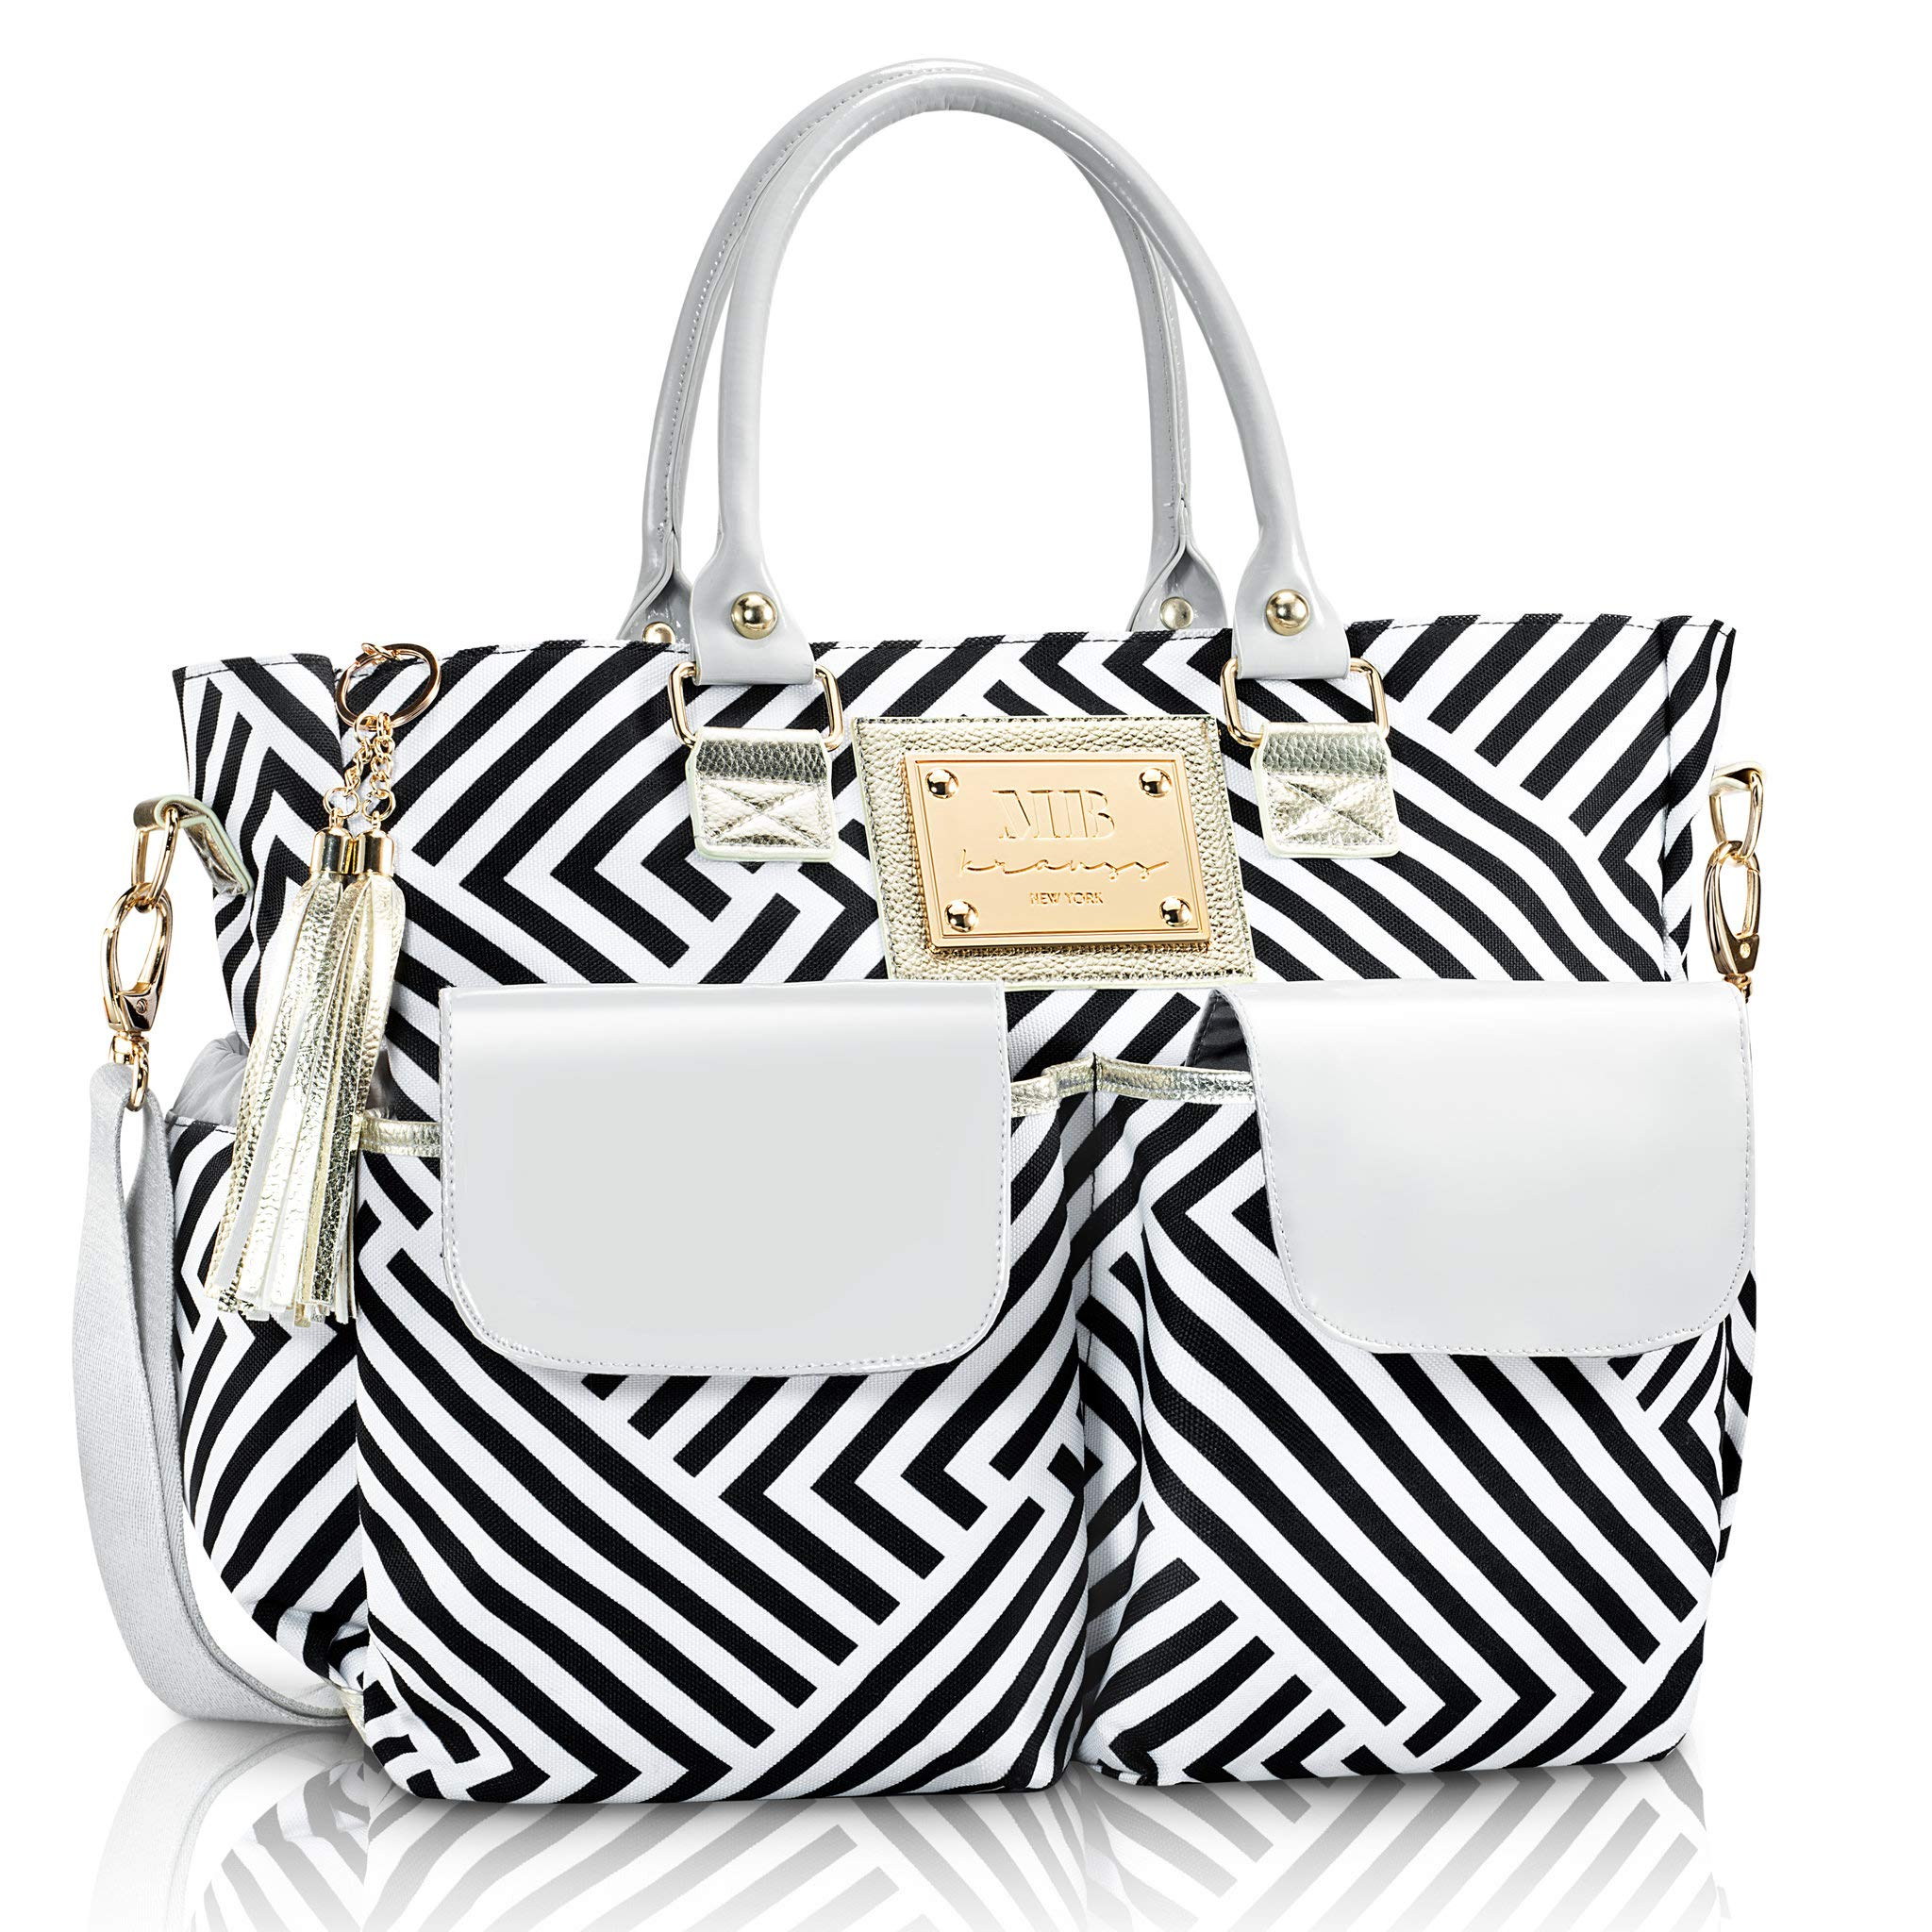 e7eddfeaf Fashion Chevron Diaper Bag by MB Krauss - Large Womens Diapering Tote with  Multiple Pockets, Bla.